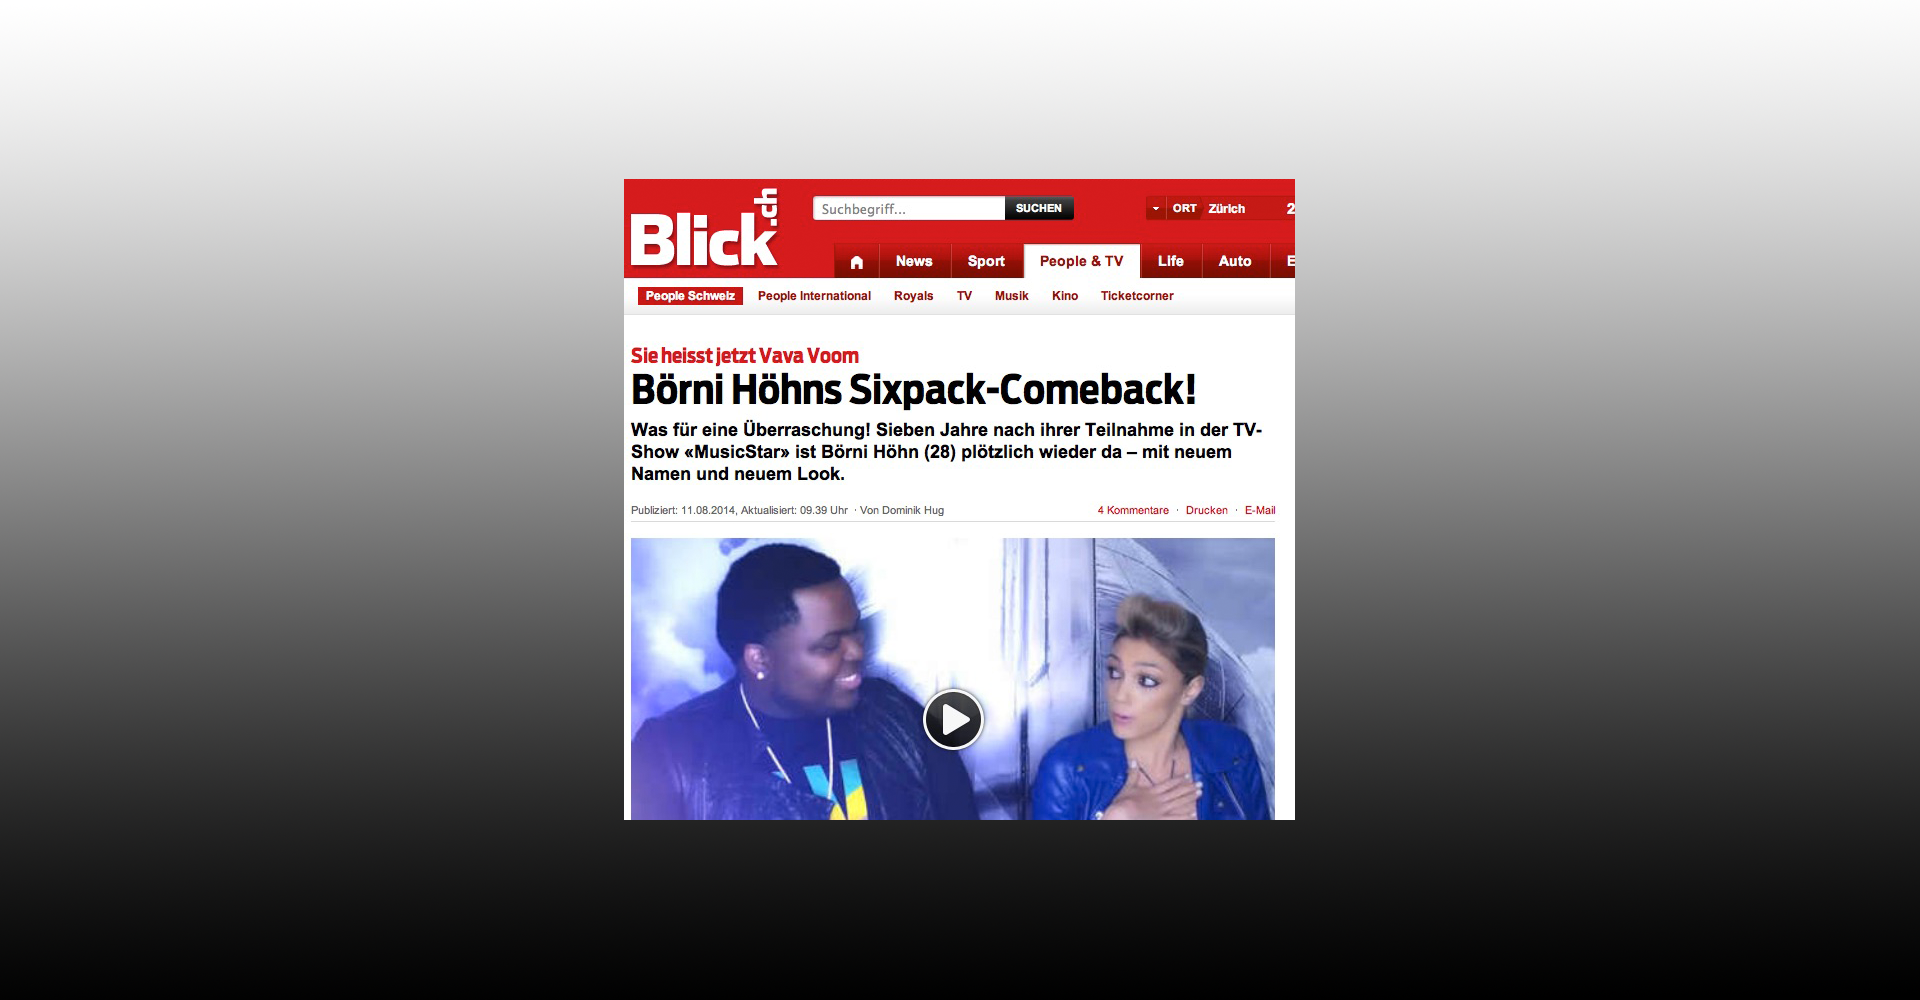 Blick largest selling Newspaper about Börni and her Comeback